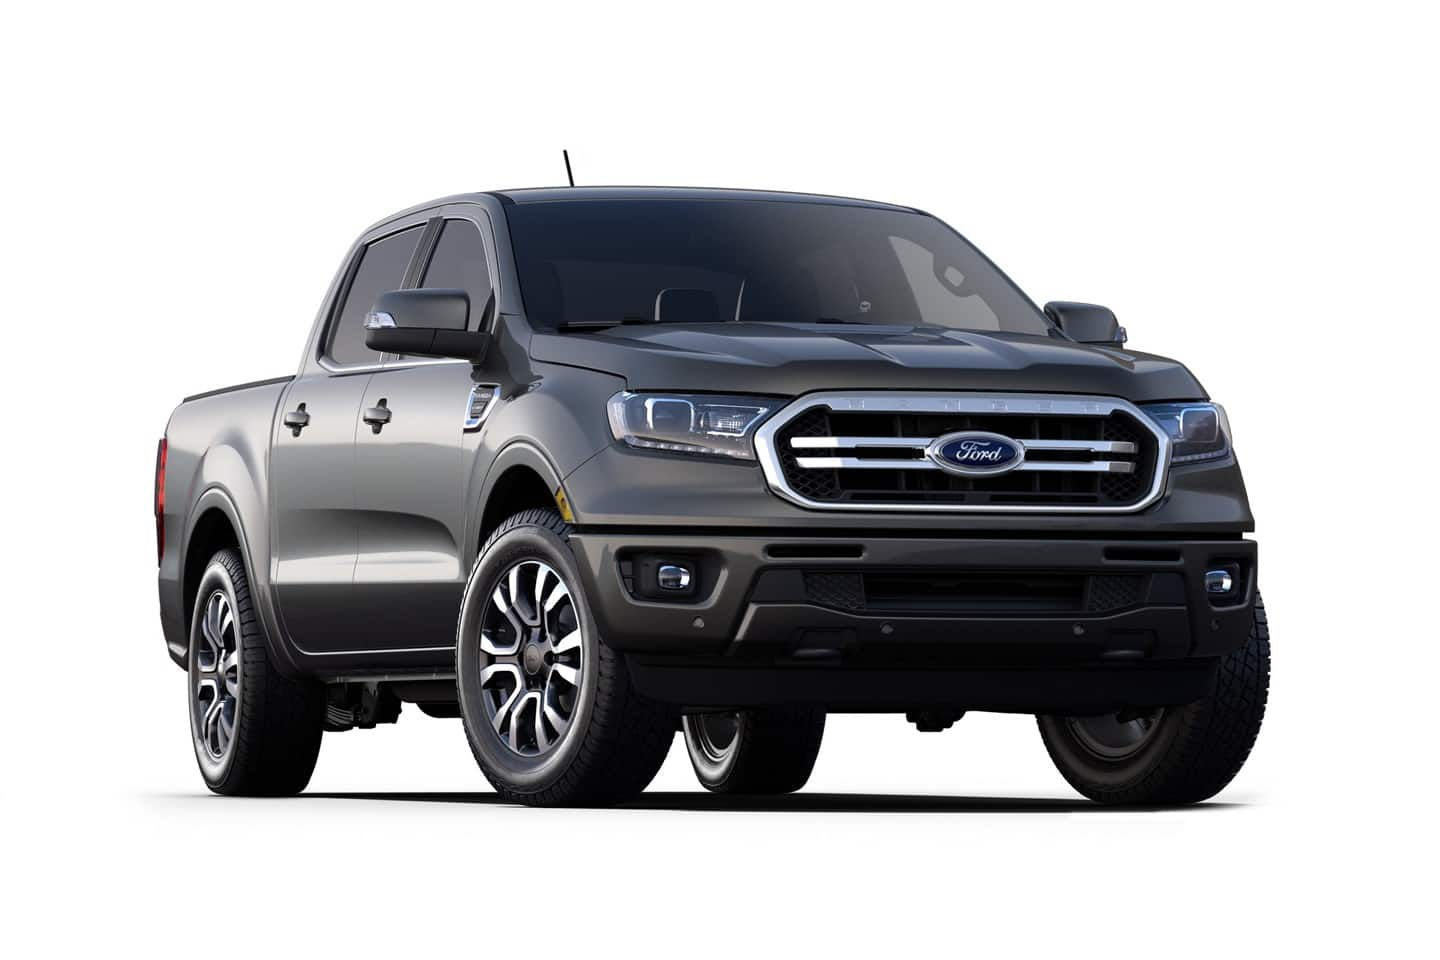 63 The 2019 Ford Ranger Aluminum Release Date